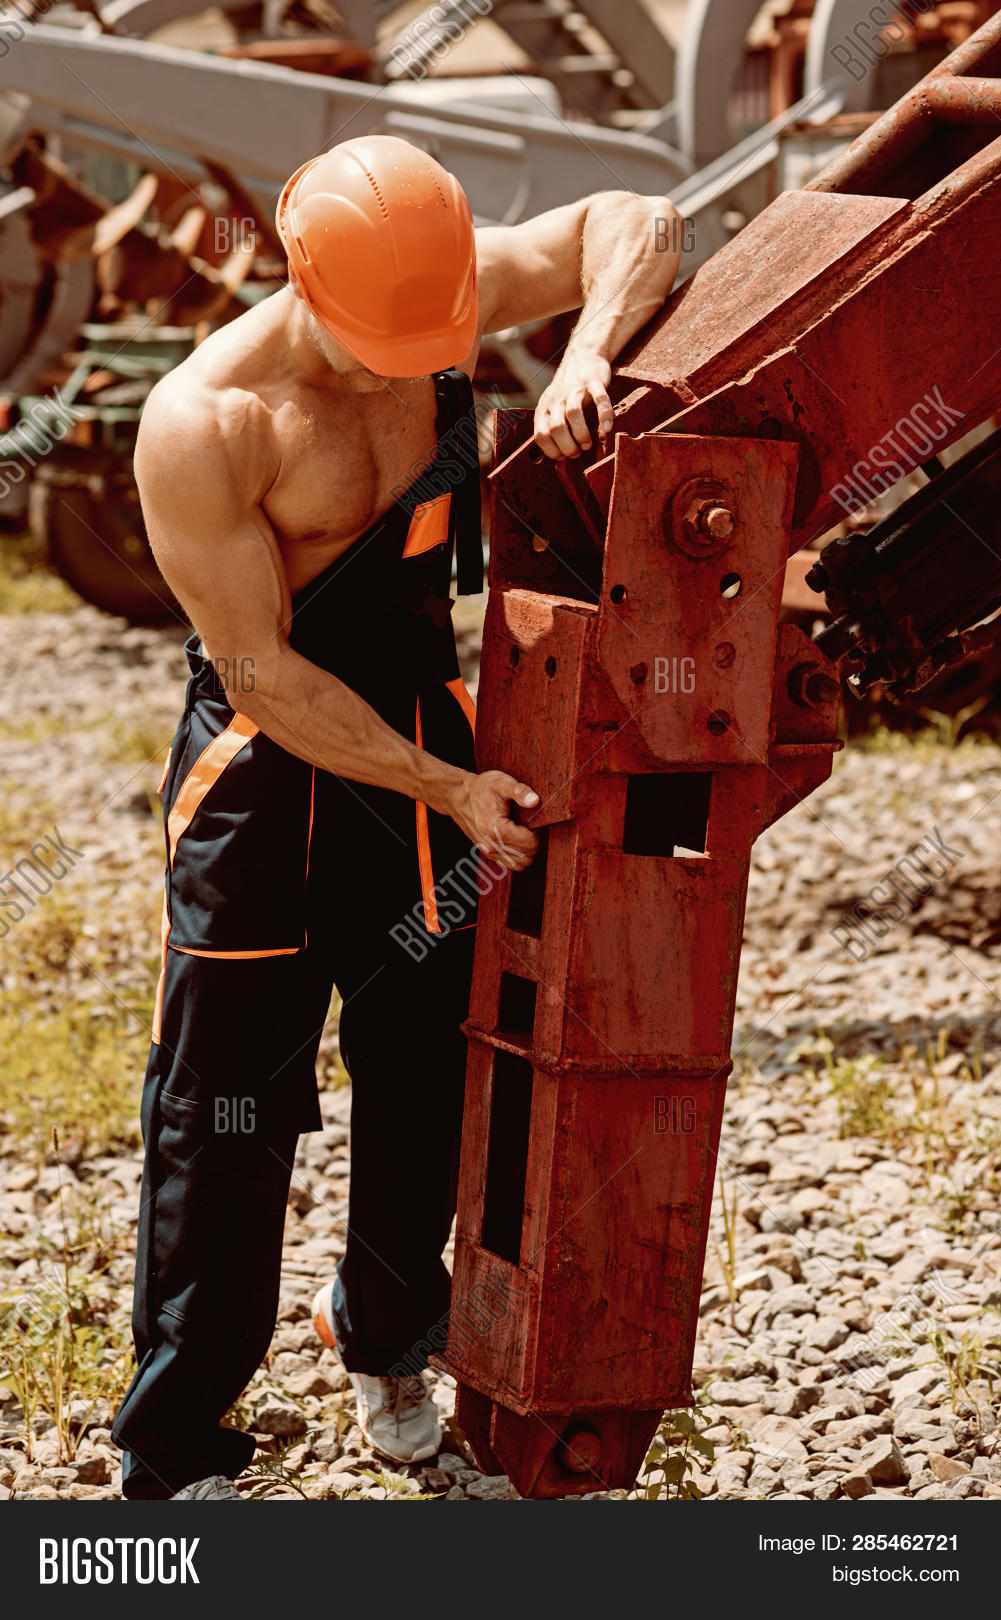 Repairman Concept. Skillful Repairman At Work. Repairman Fix Heavy Equipment. Machinery Repairman In